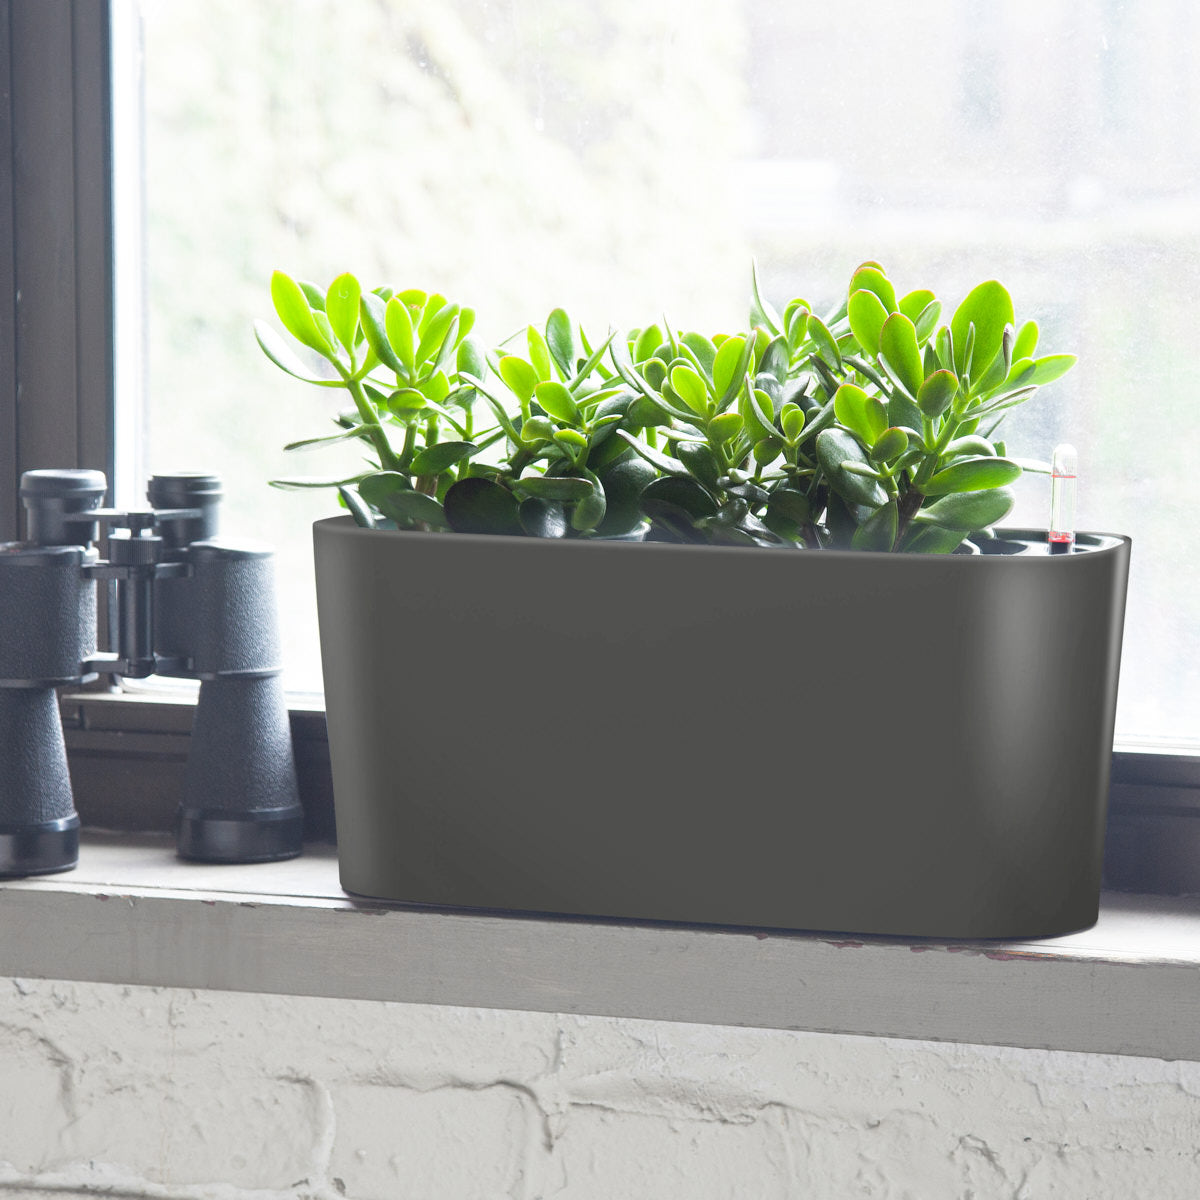 Jade Plant Potted In Windowsill Charcoal Planter My City Plants